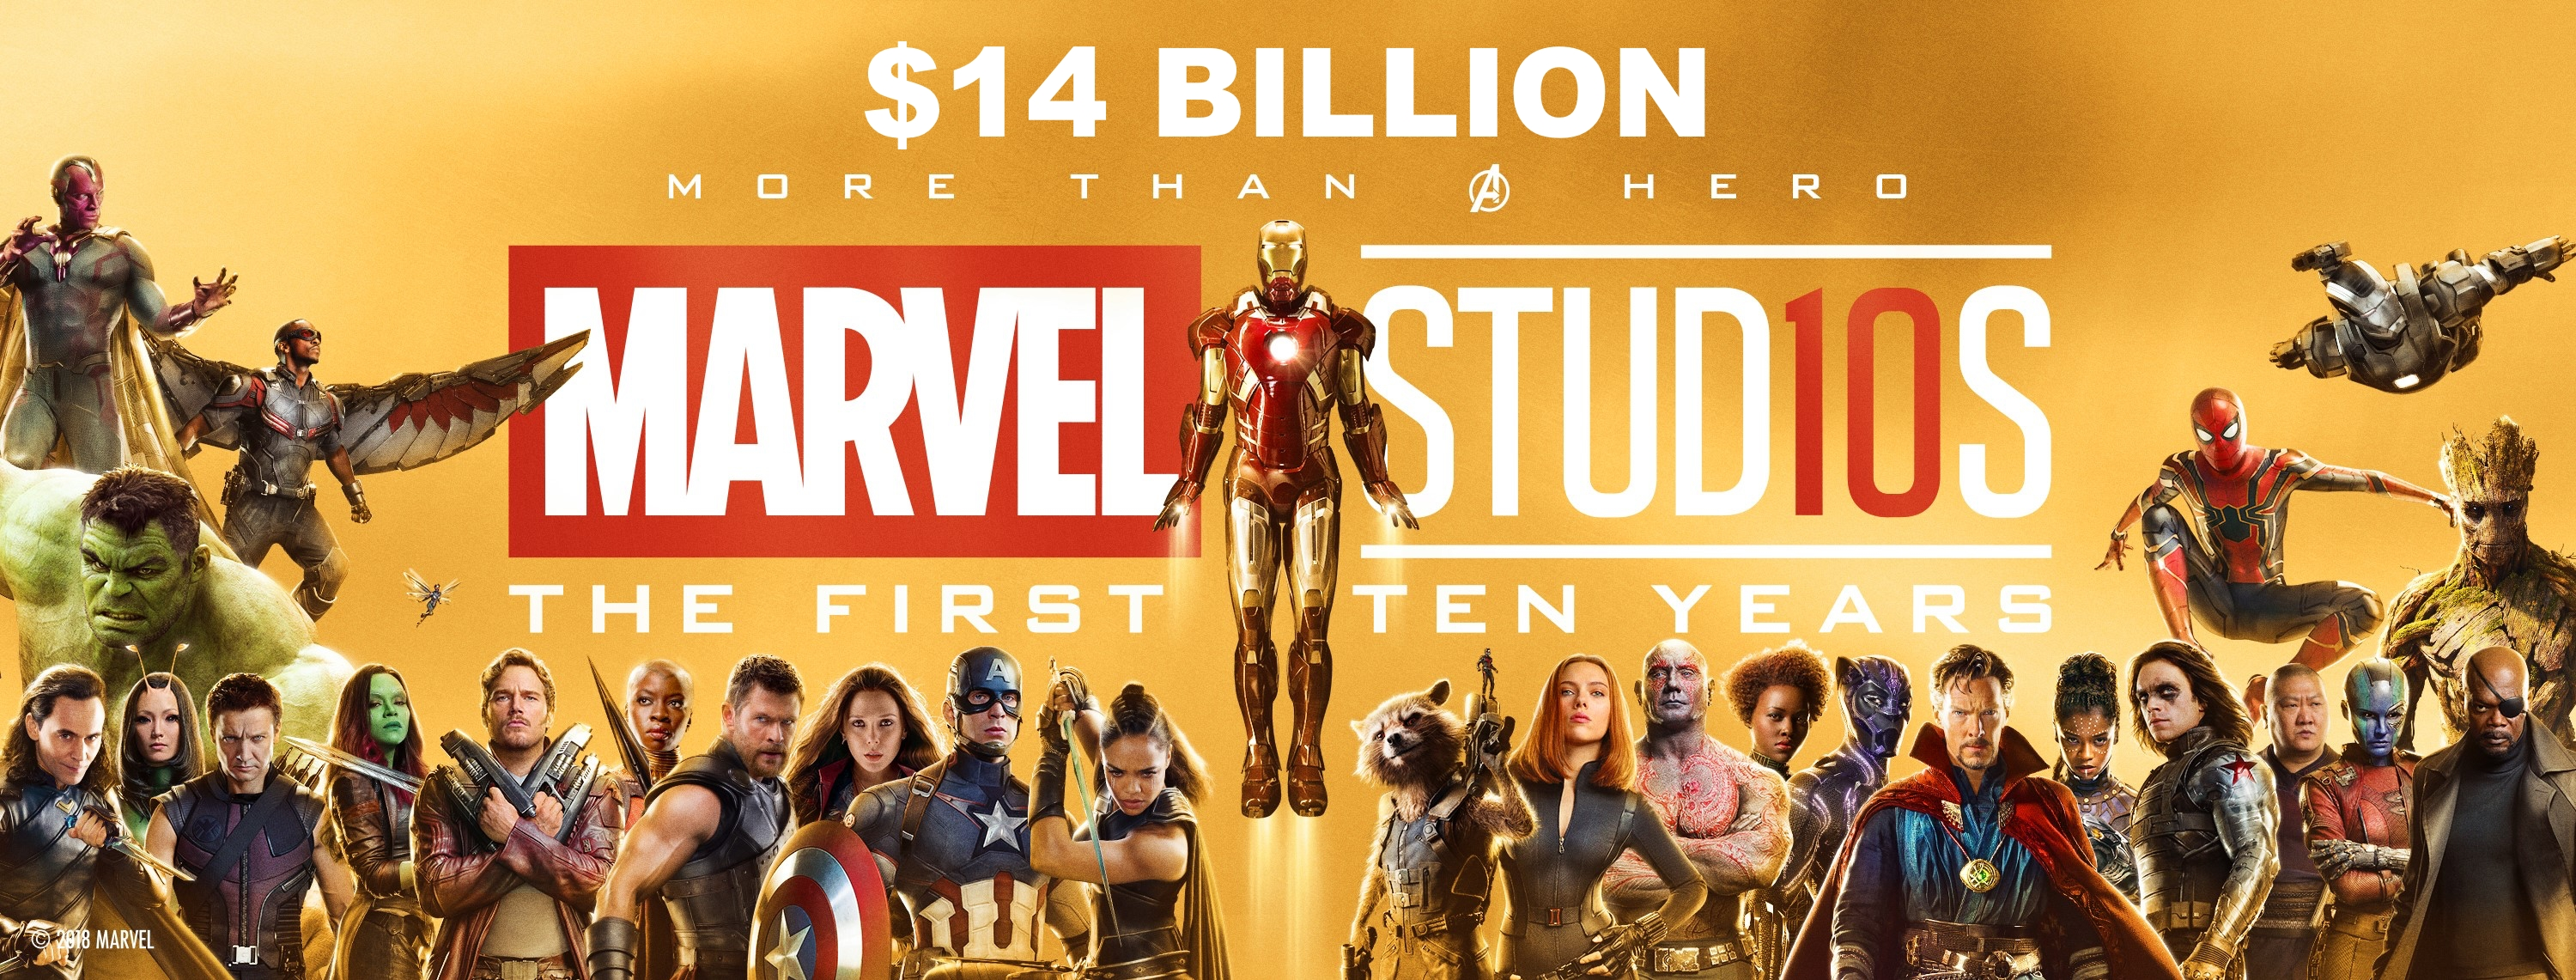 Marvel Studios banner 14 billion